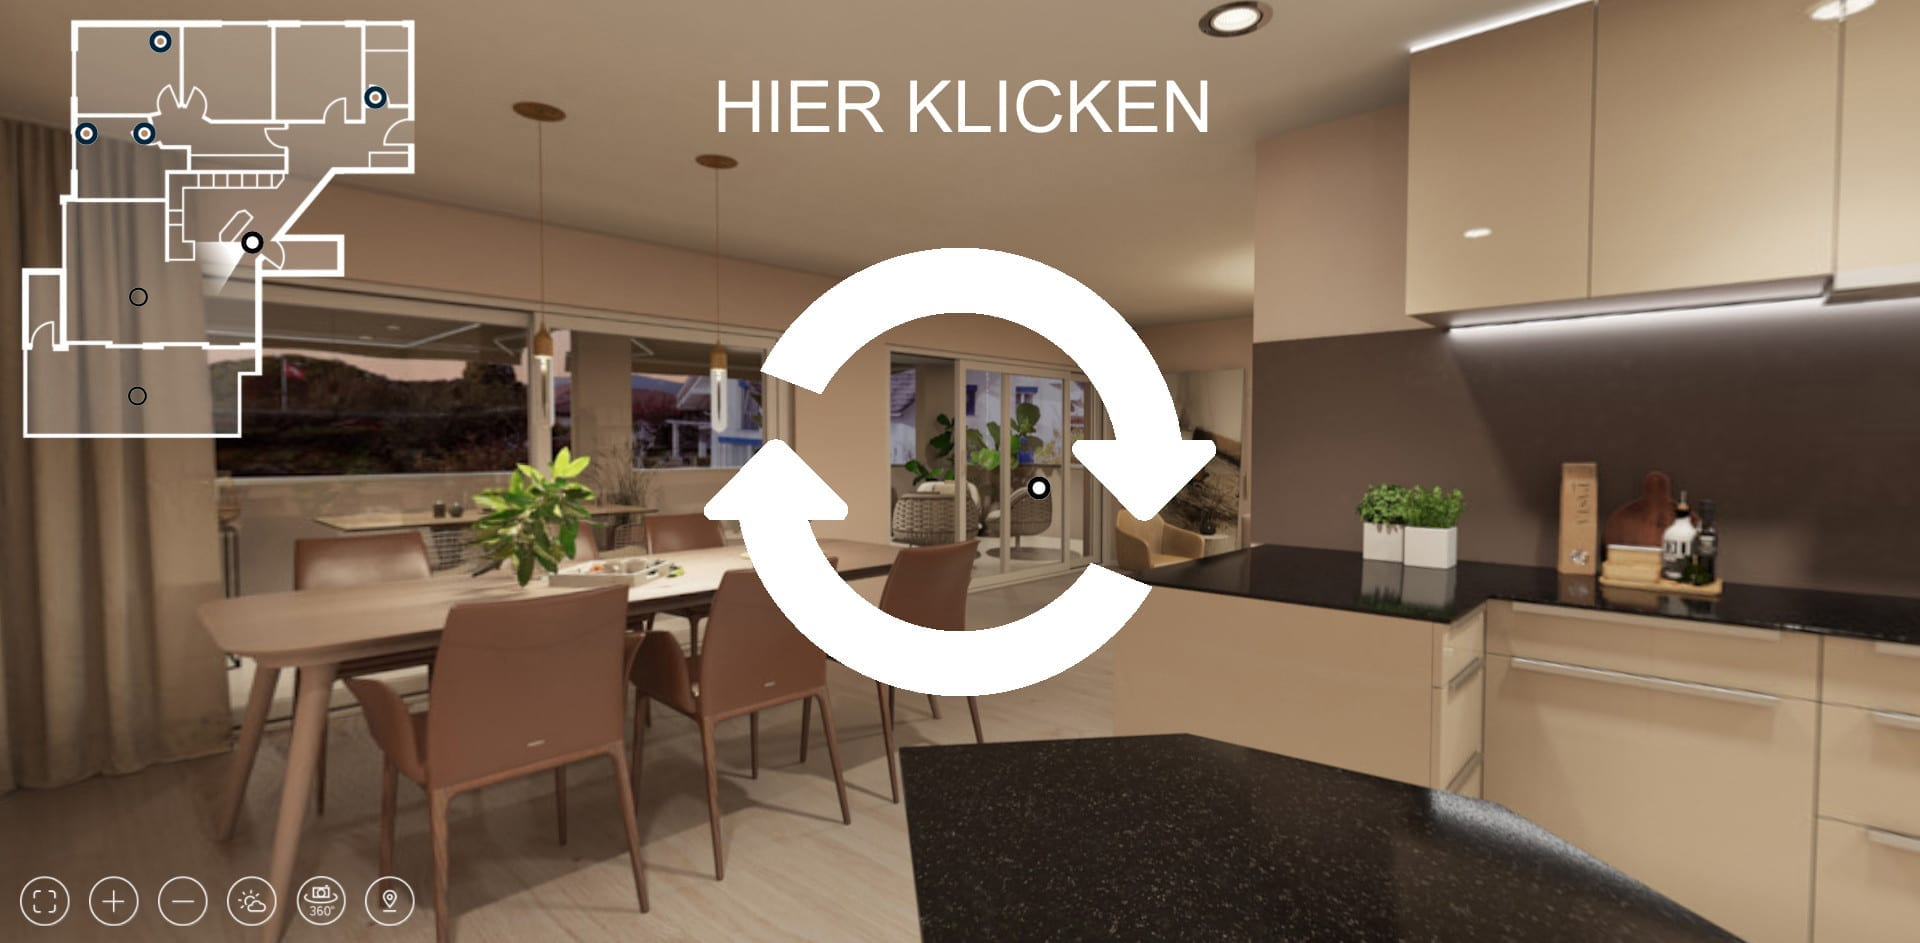 360 Rundgang Wohnung Virtual Reality 3d Animation Stomeo